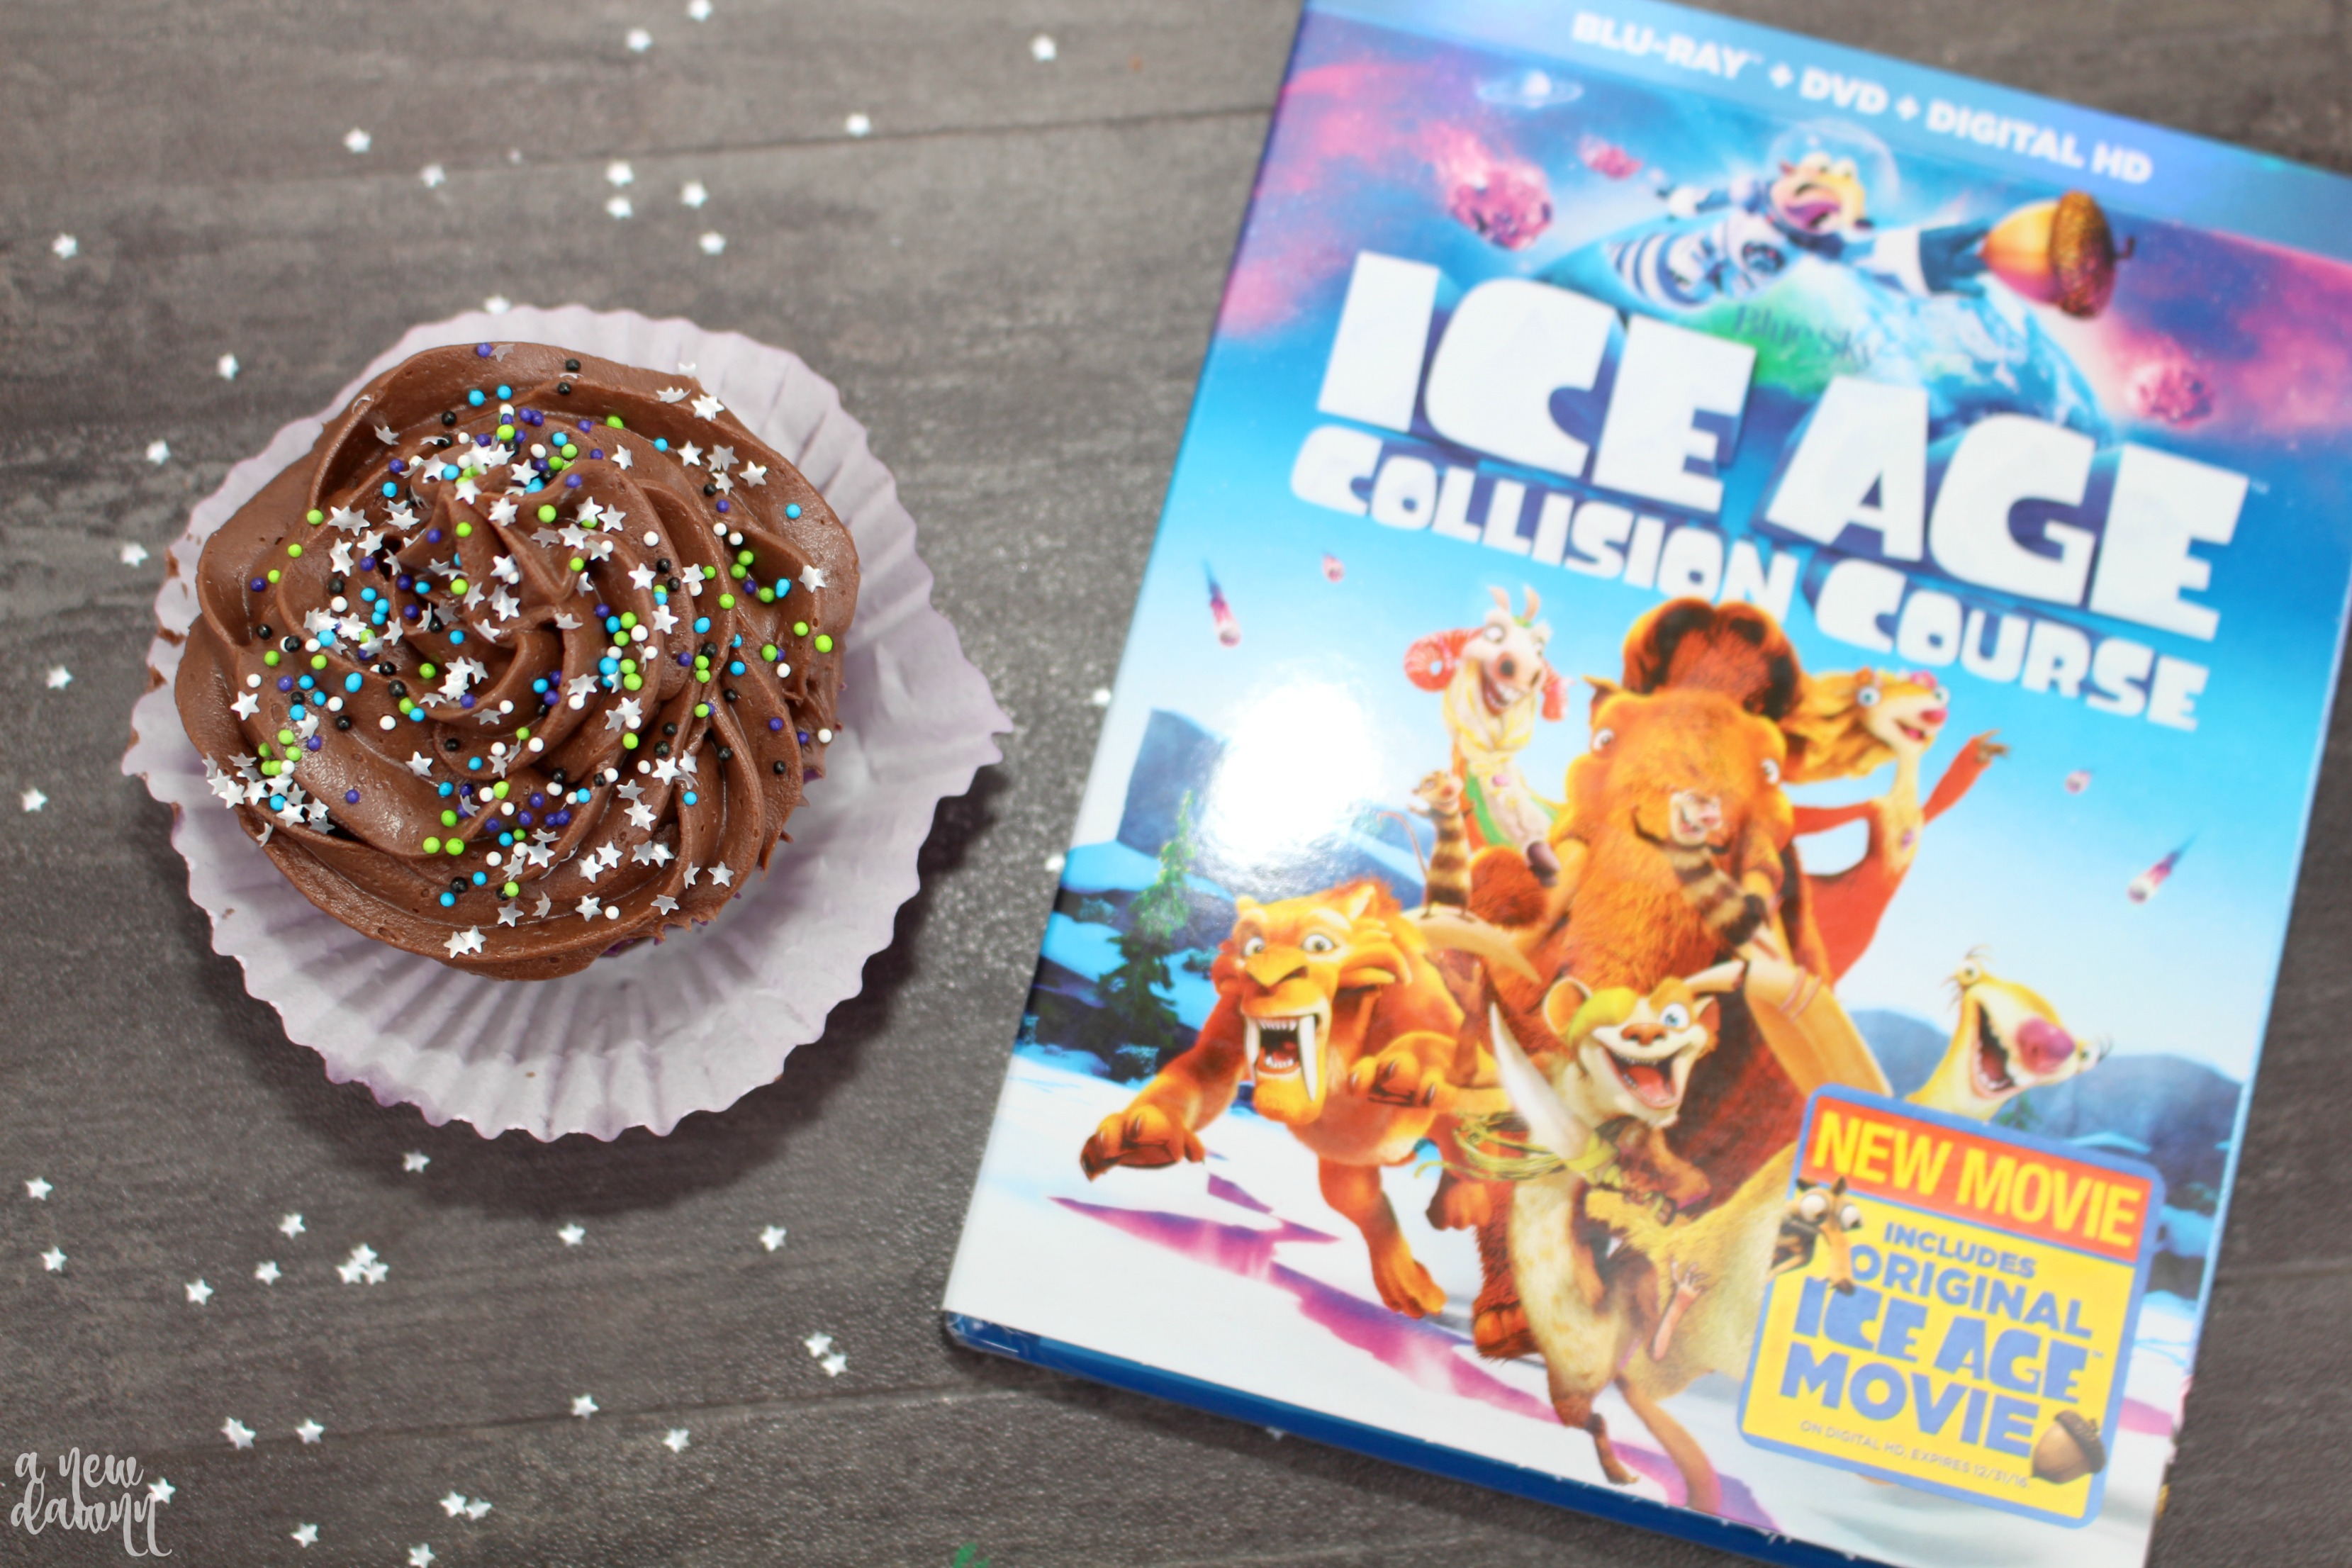 Age: Collision Course Galactic Cupcakes Recipe & Movie